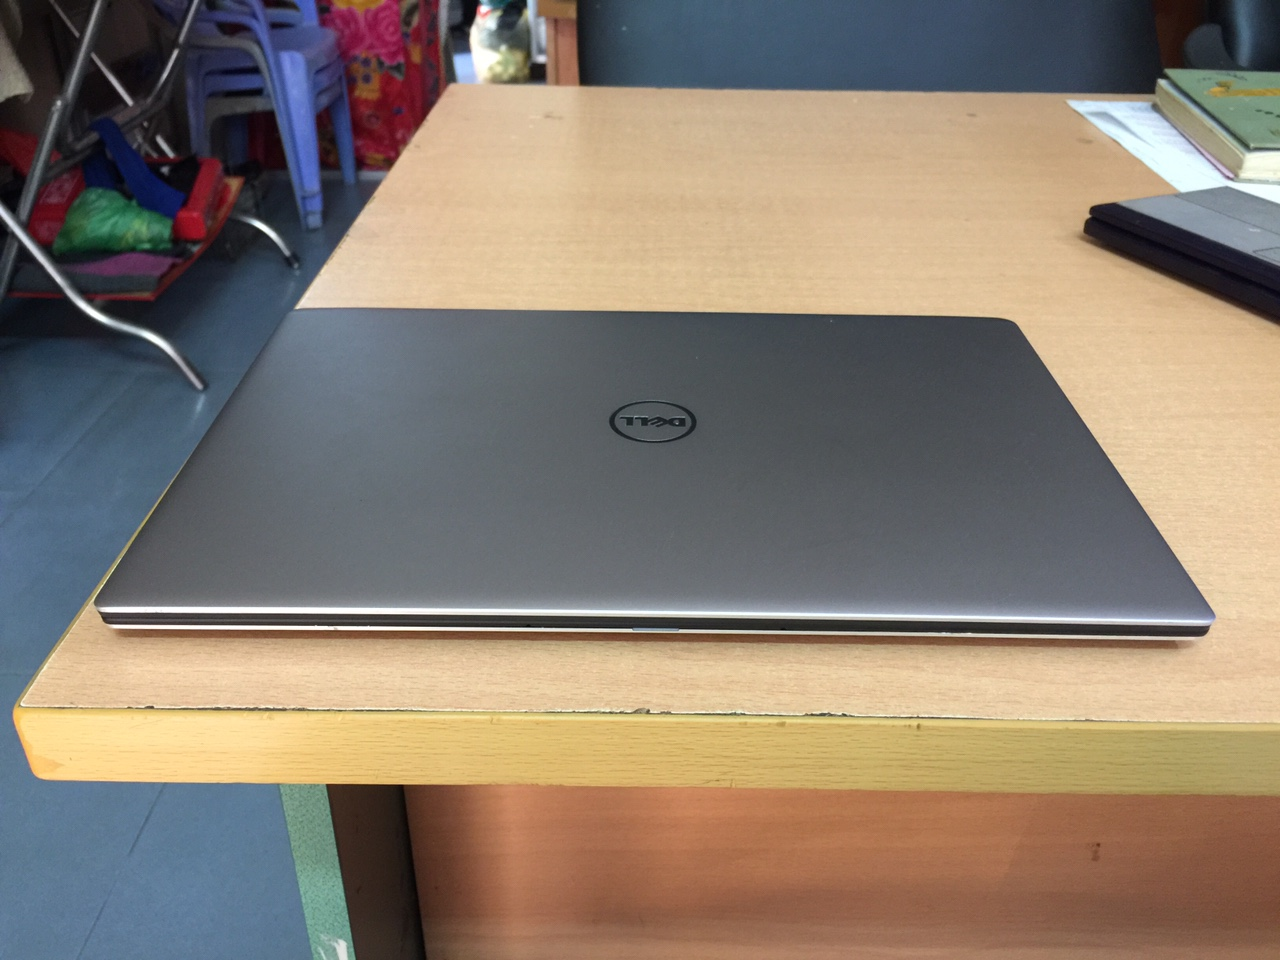 DELL XPS 13 9350 I5 6200U 8GB 256GB 13.3 3K TOUCH